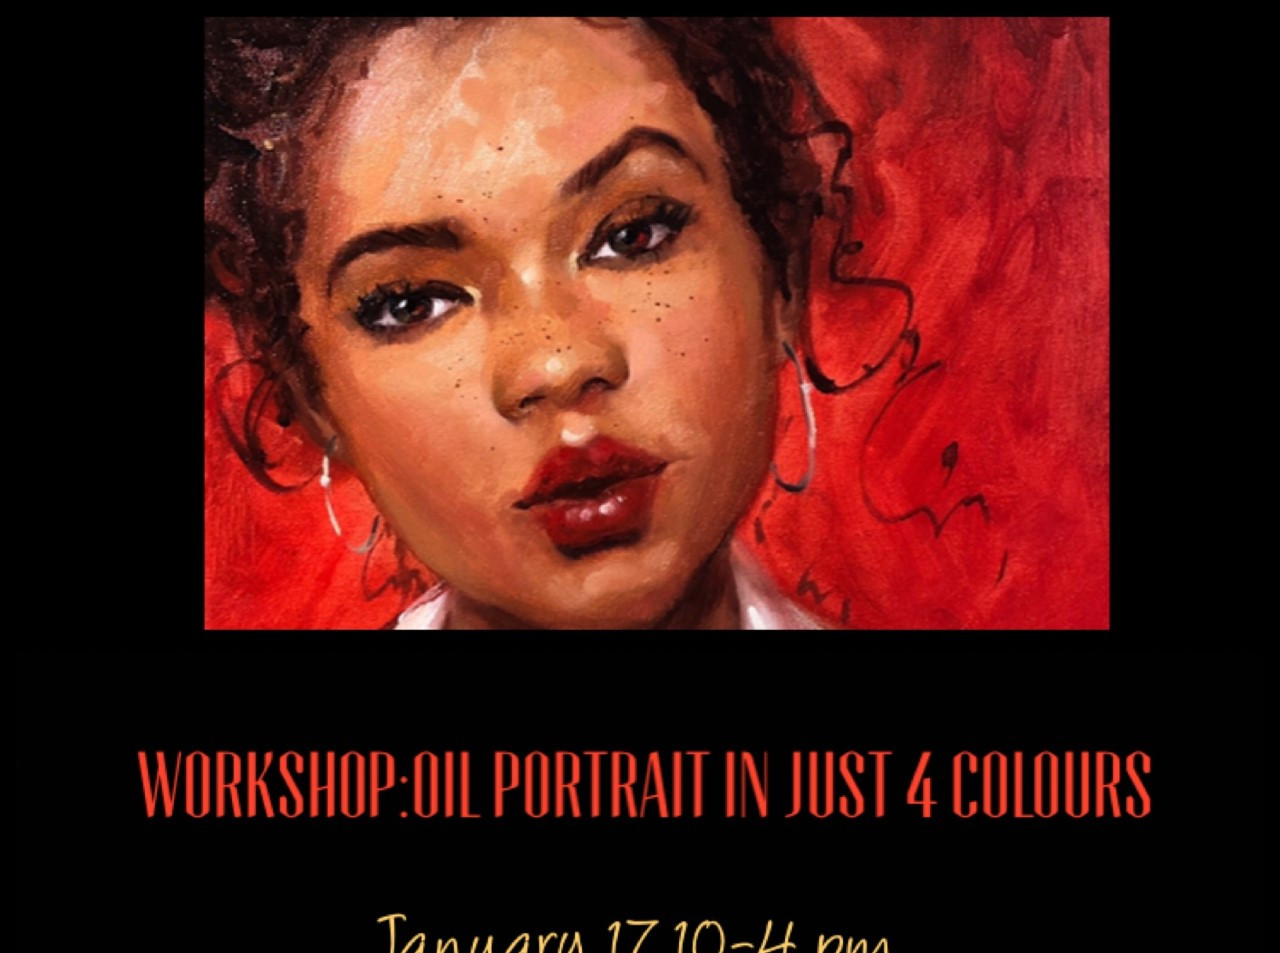 Oil Portrait Workshop in 4 Colours